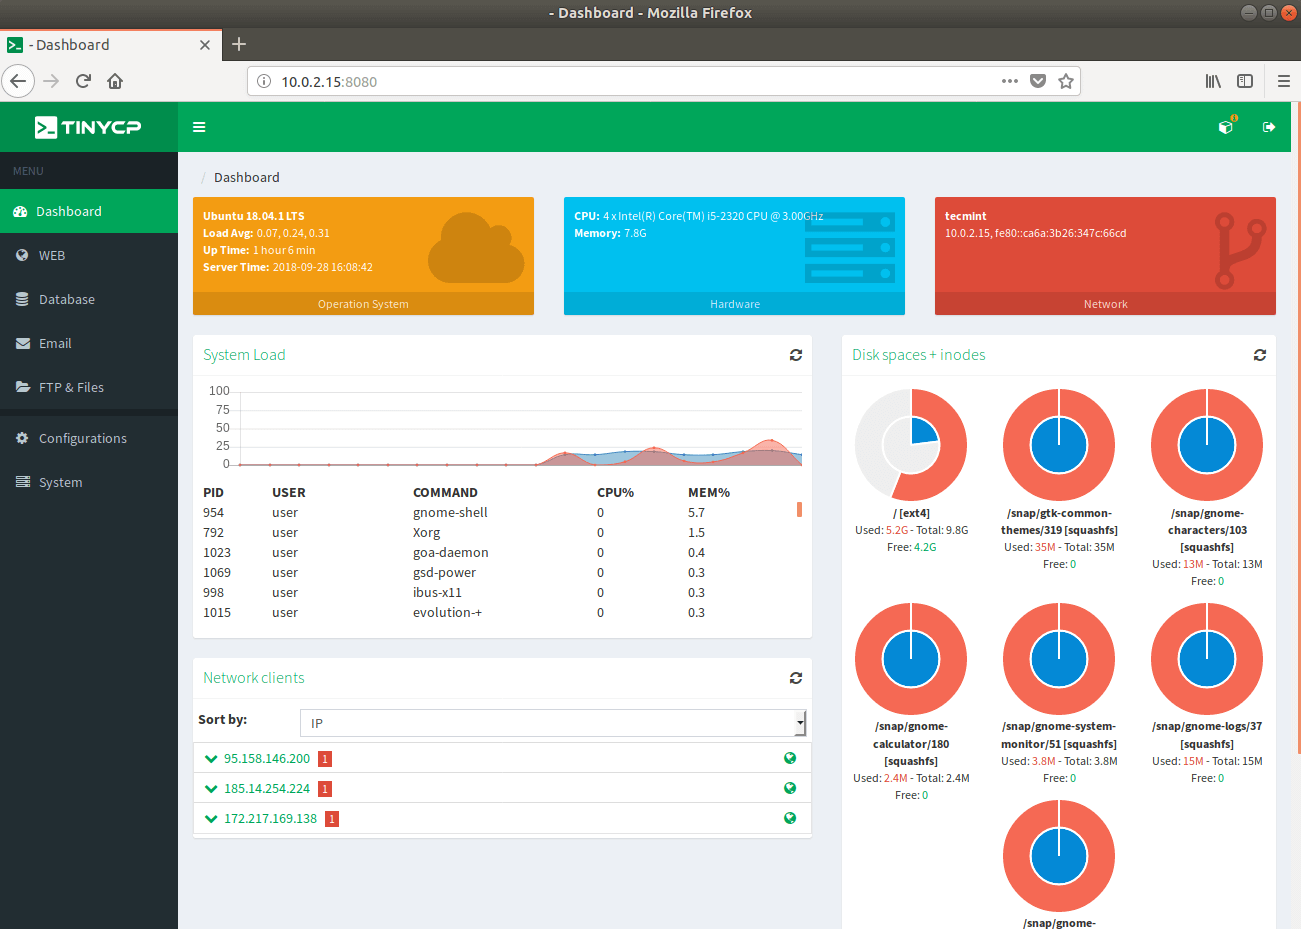 TinyCP - A Lightweight Control Panel for Managing Linux Systems